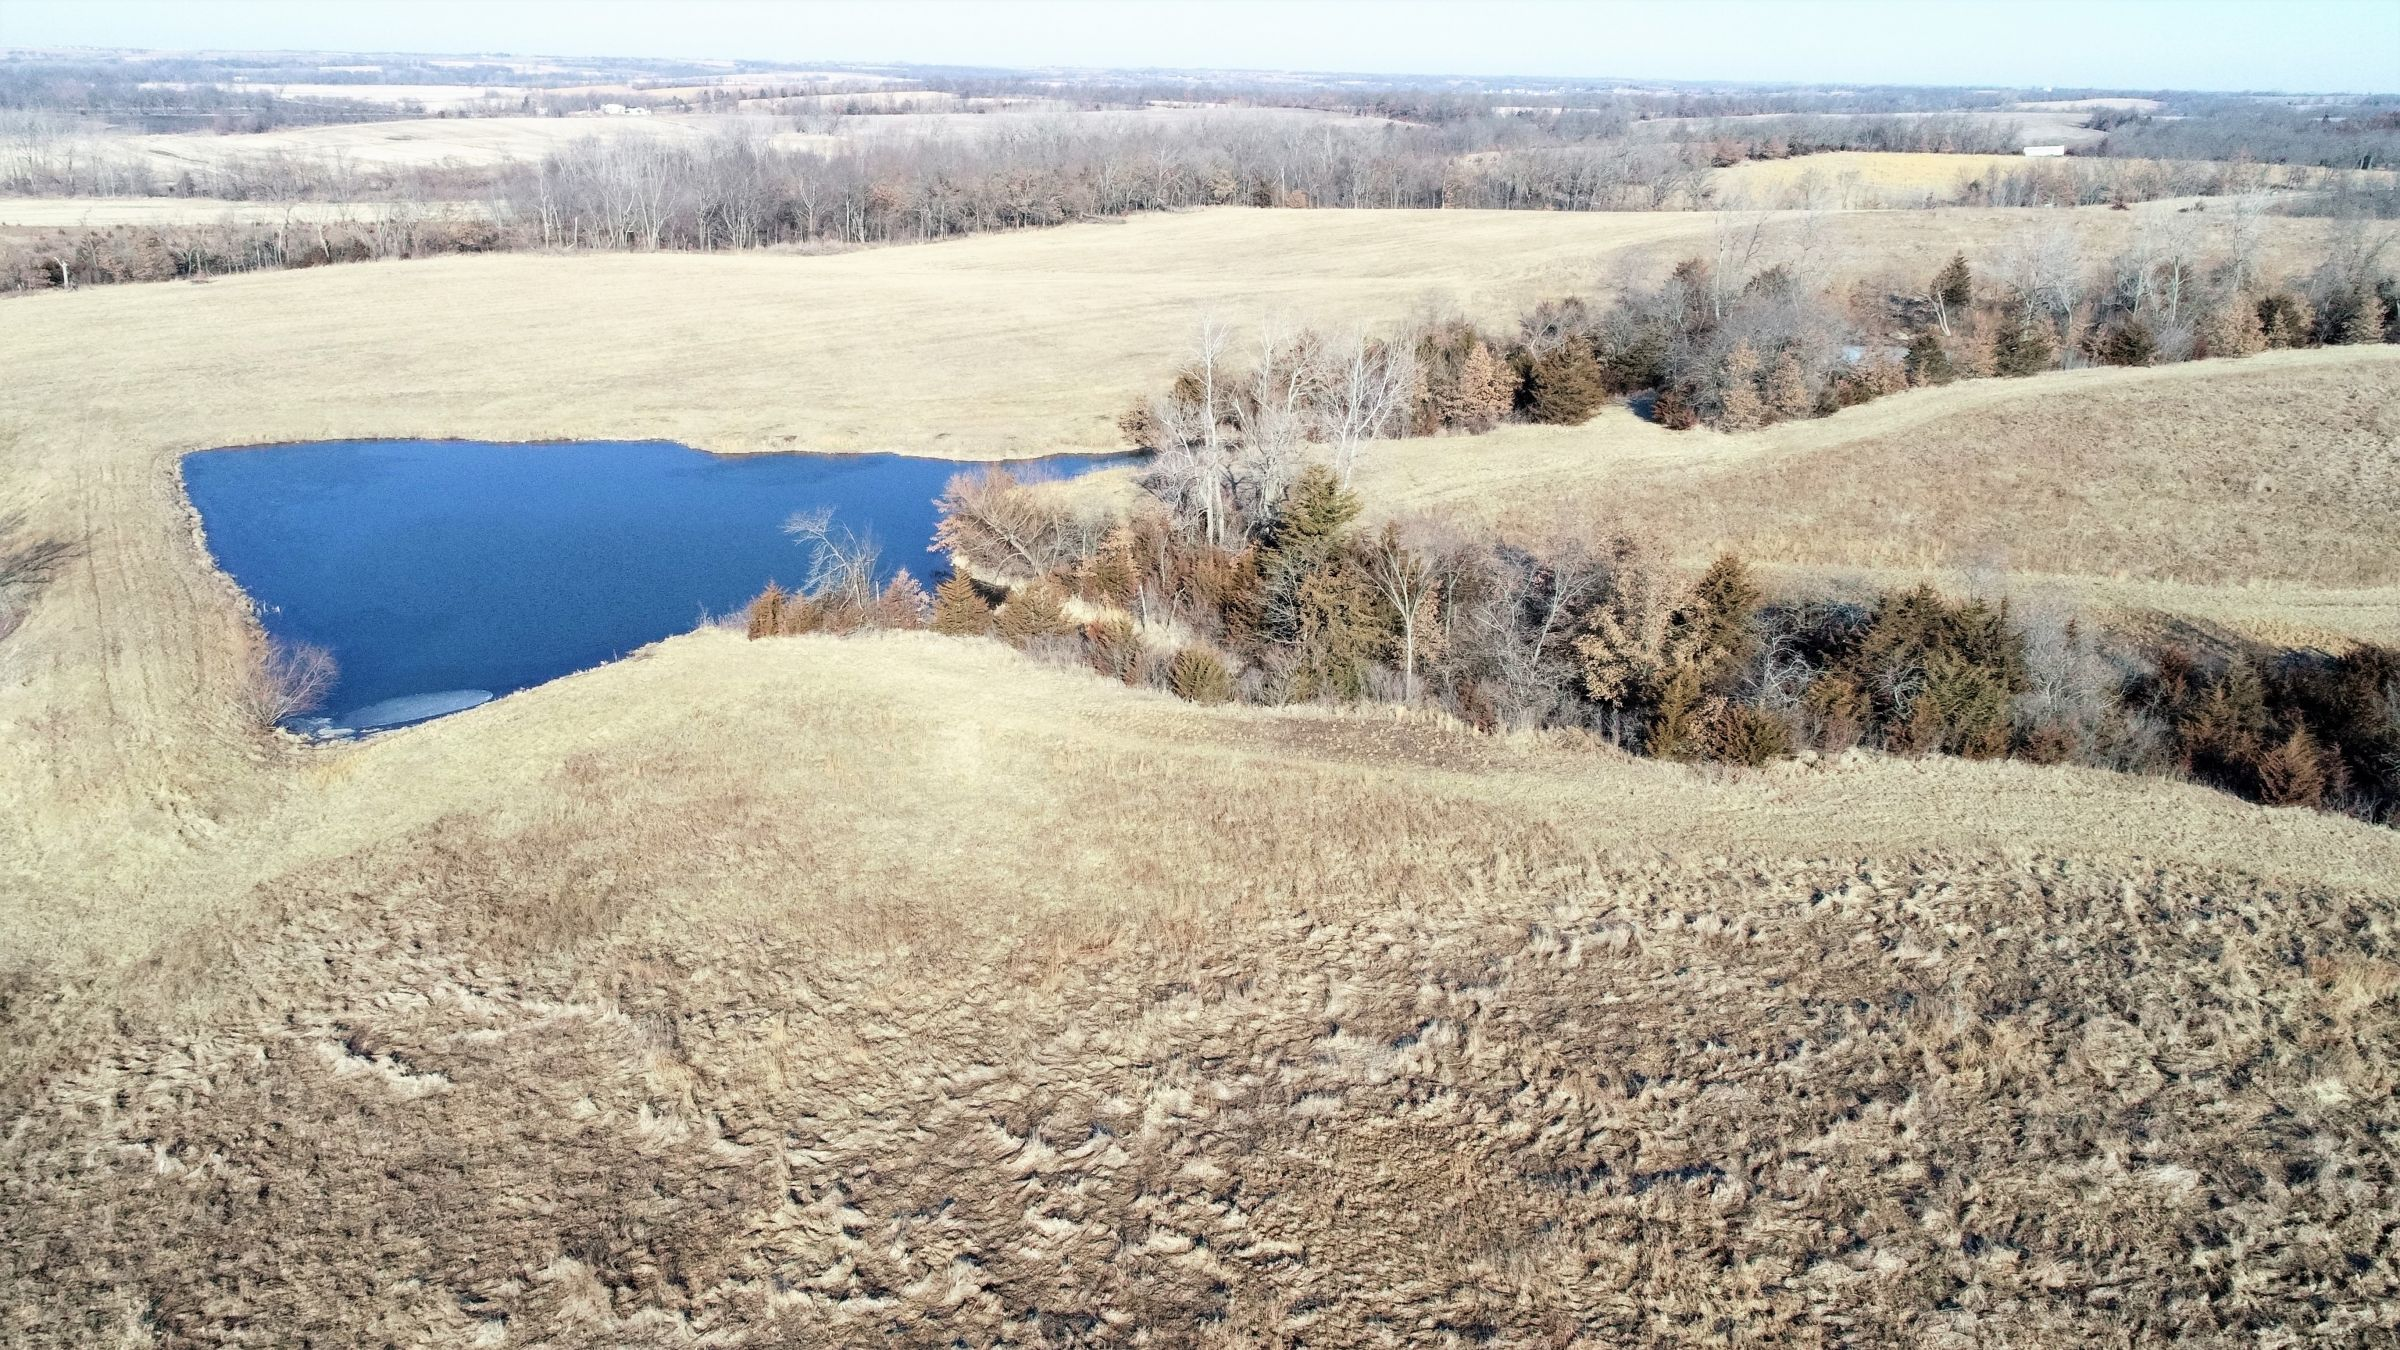 land-gentry-county-missouri-40-acres-listing-number-15397-3-2021-03-09-163950.jpg